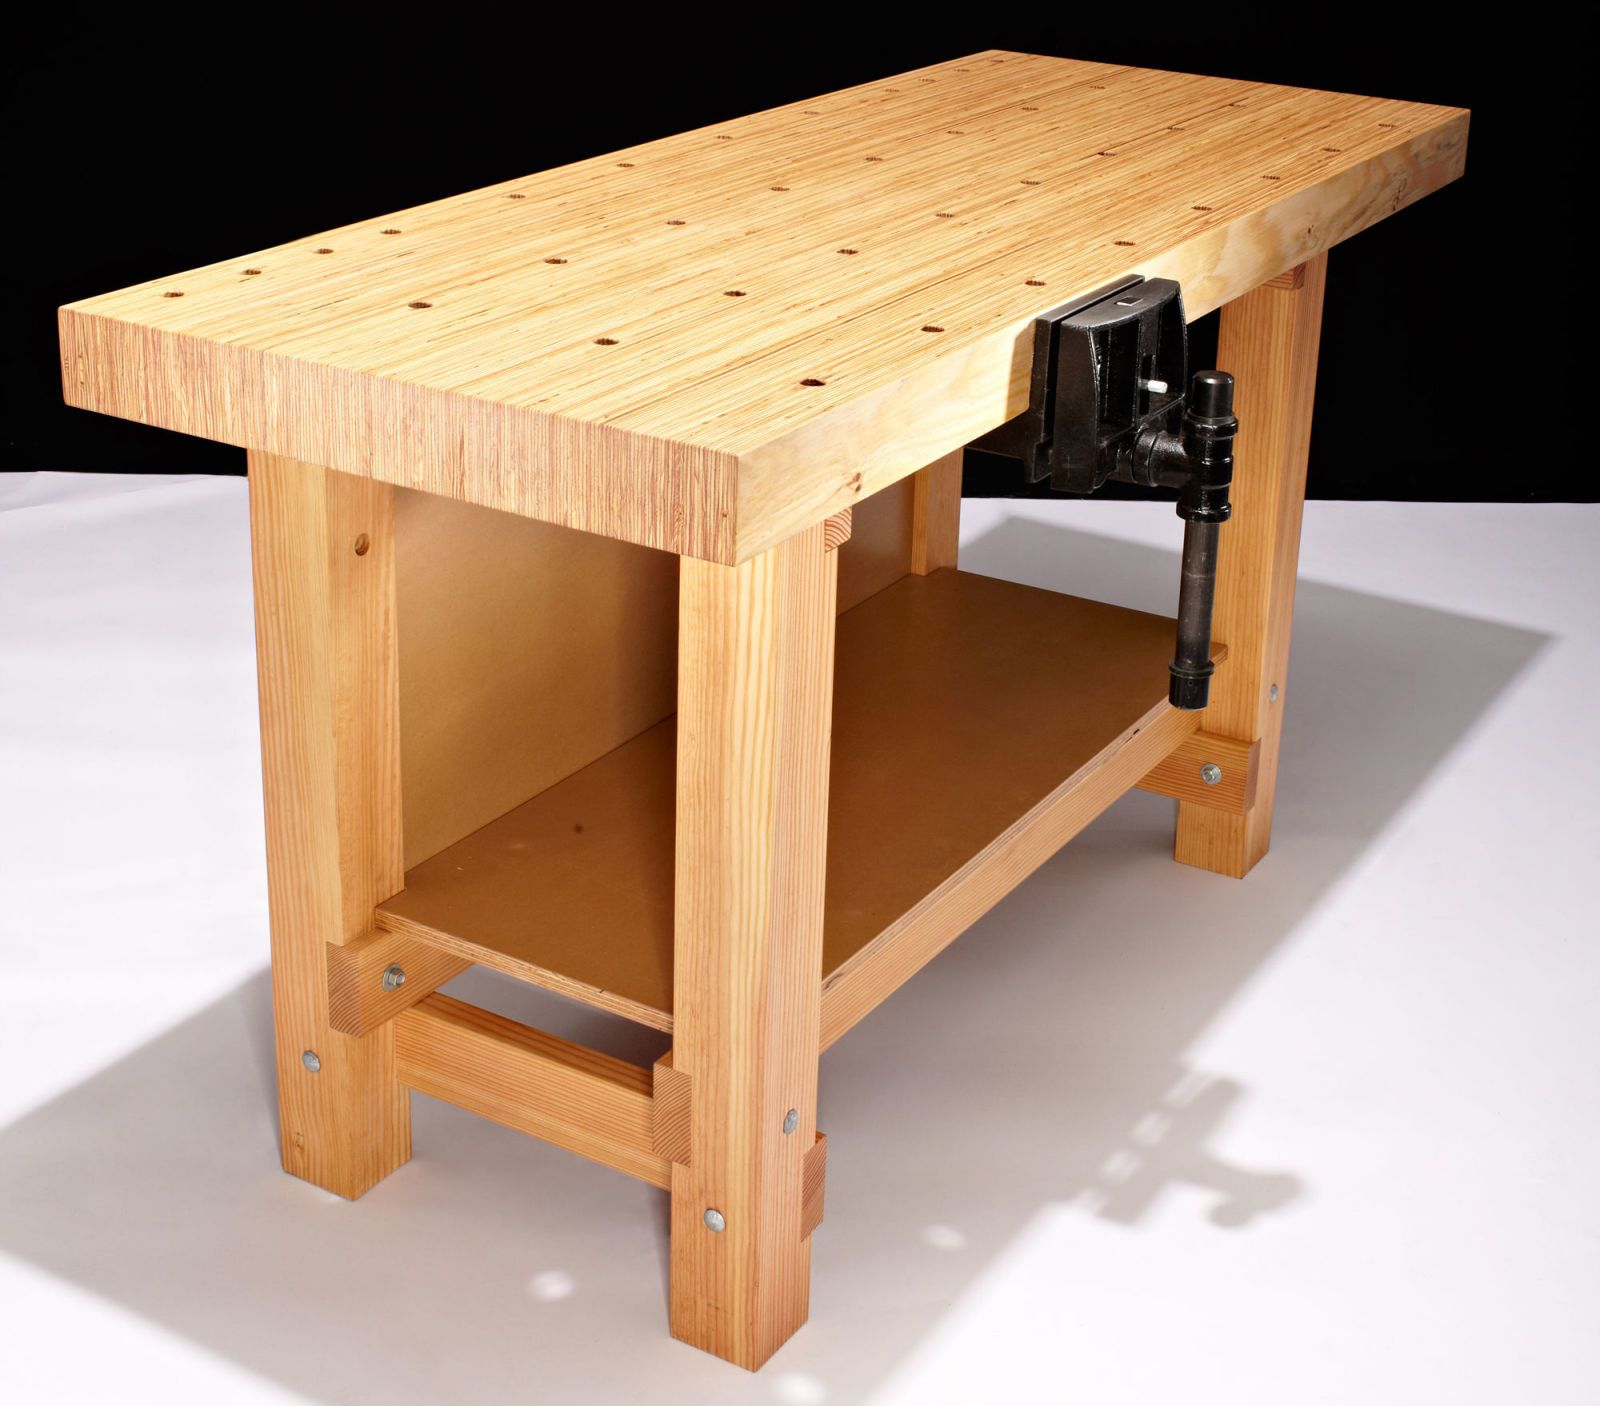 How To Build The Ultimate Diy Workbench Woodworking Projects Diy Woodworking Workbench Woodworking Bench